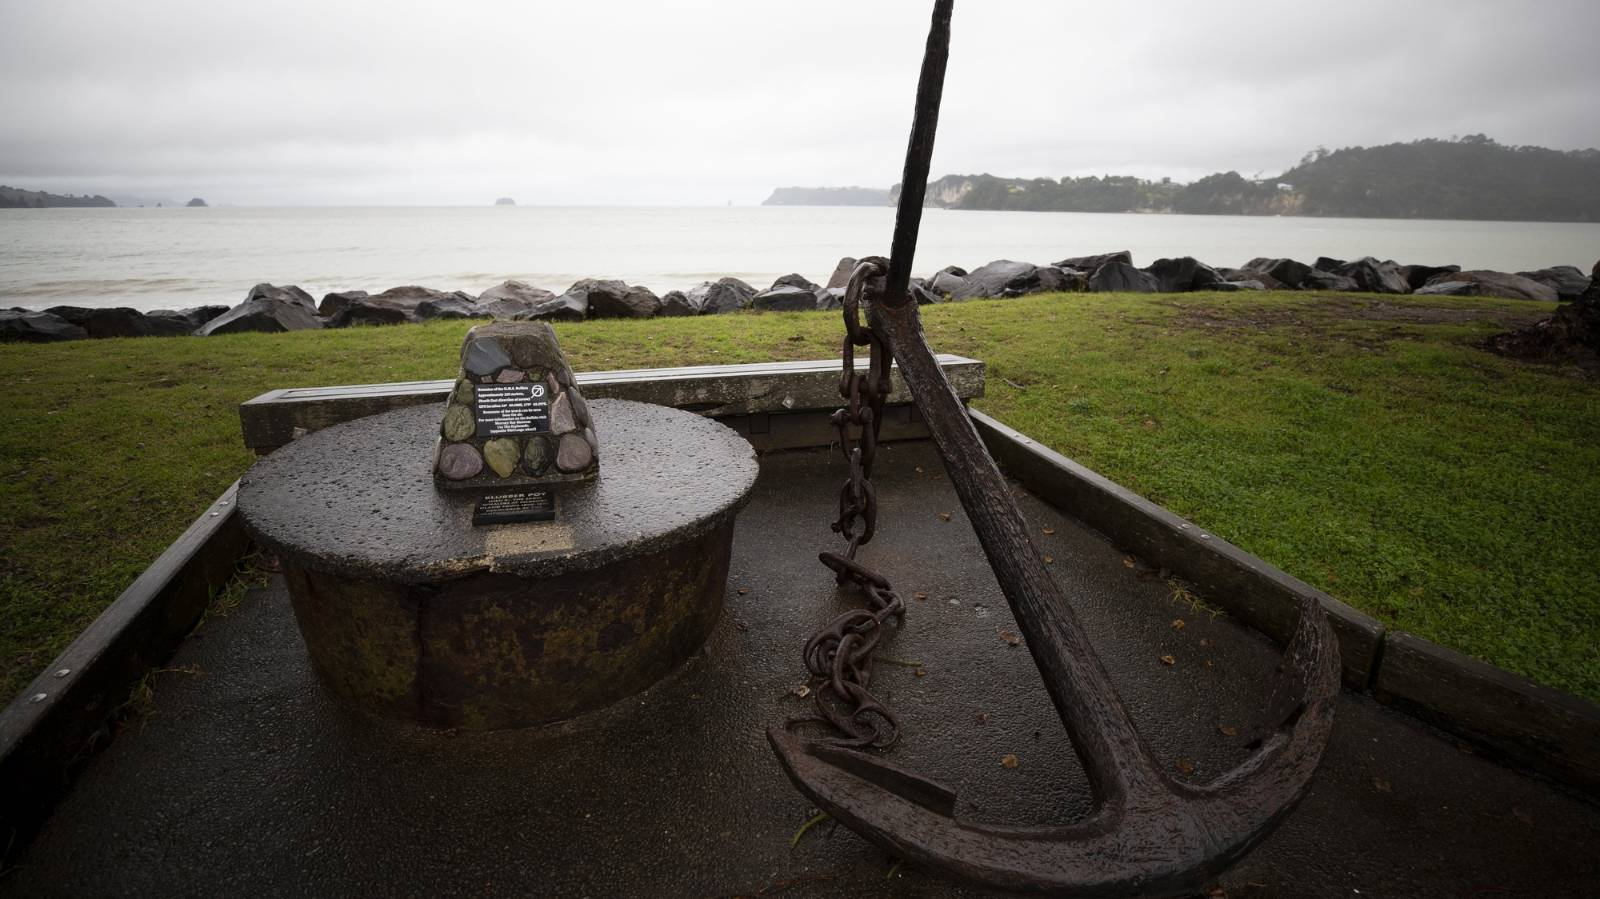 181-year old Whitianga shipwreck at risk as museum struggles for cash